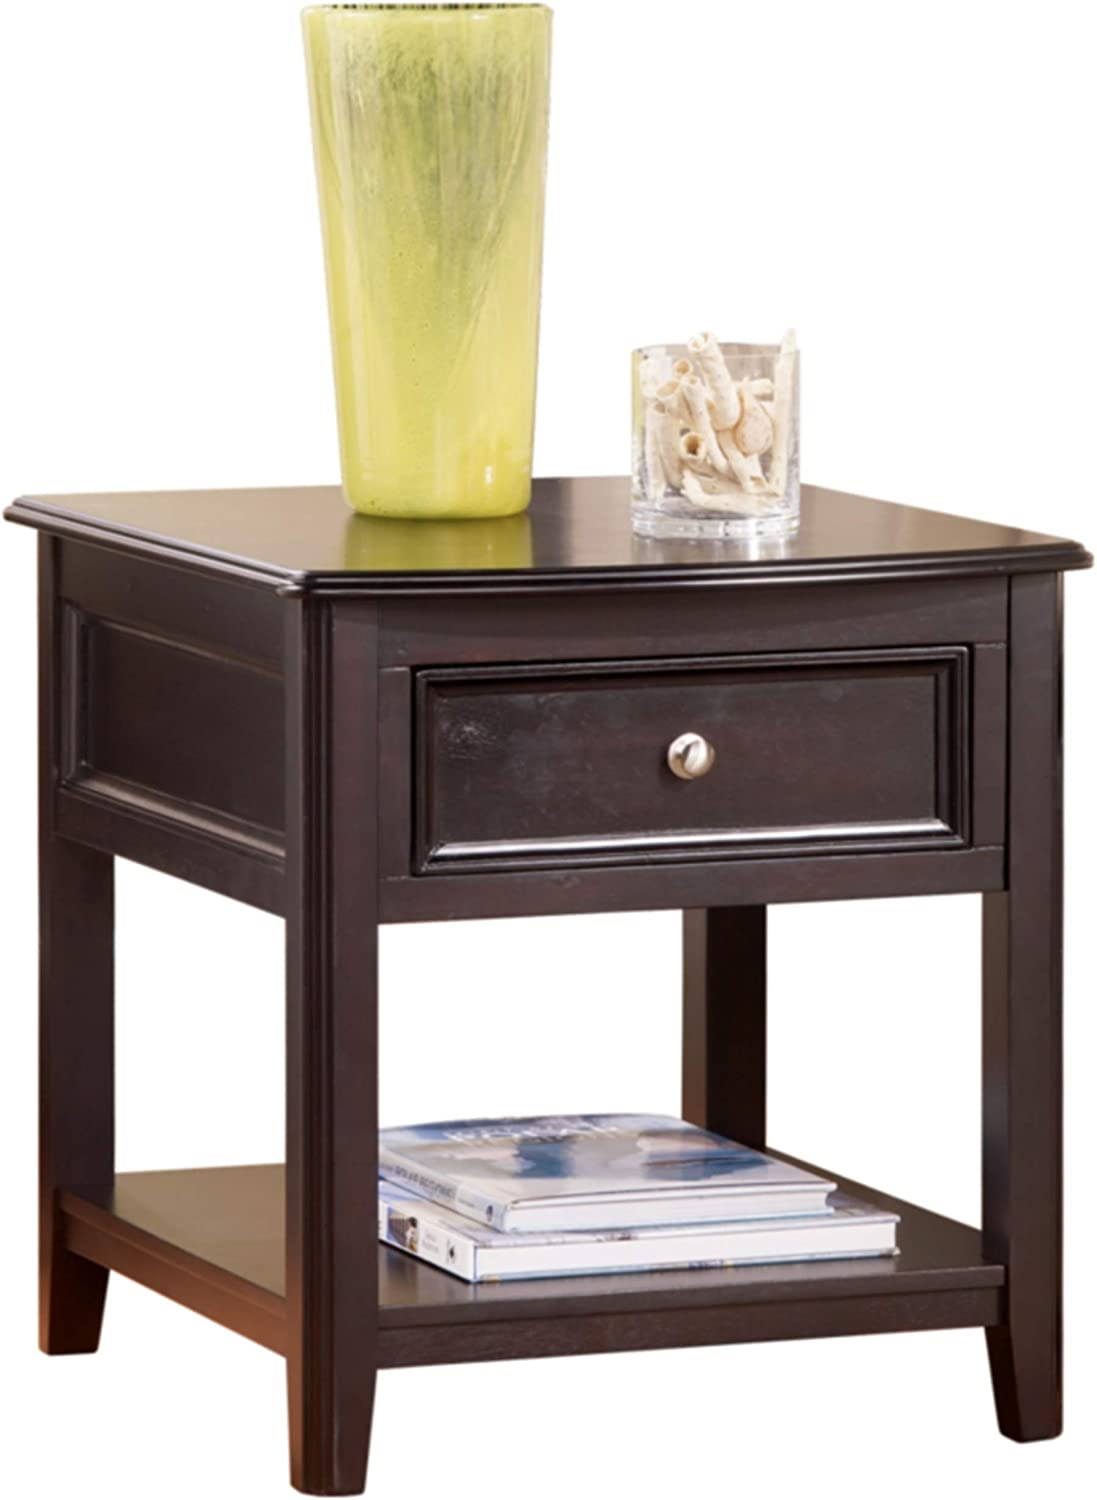 Signature Design By Ashley Carlyle End Table Rectangular With 1 Drawer And 1 Shelf Almost Black Amazon Ca Home Kitchen